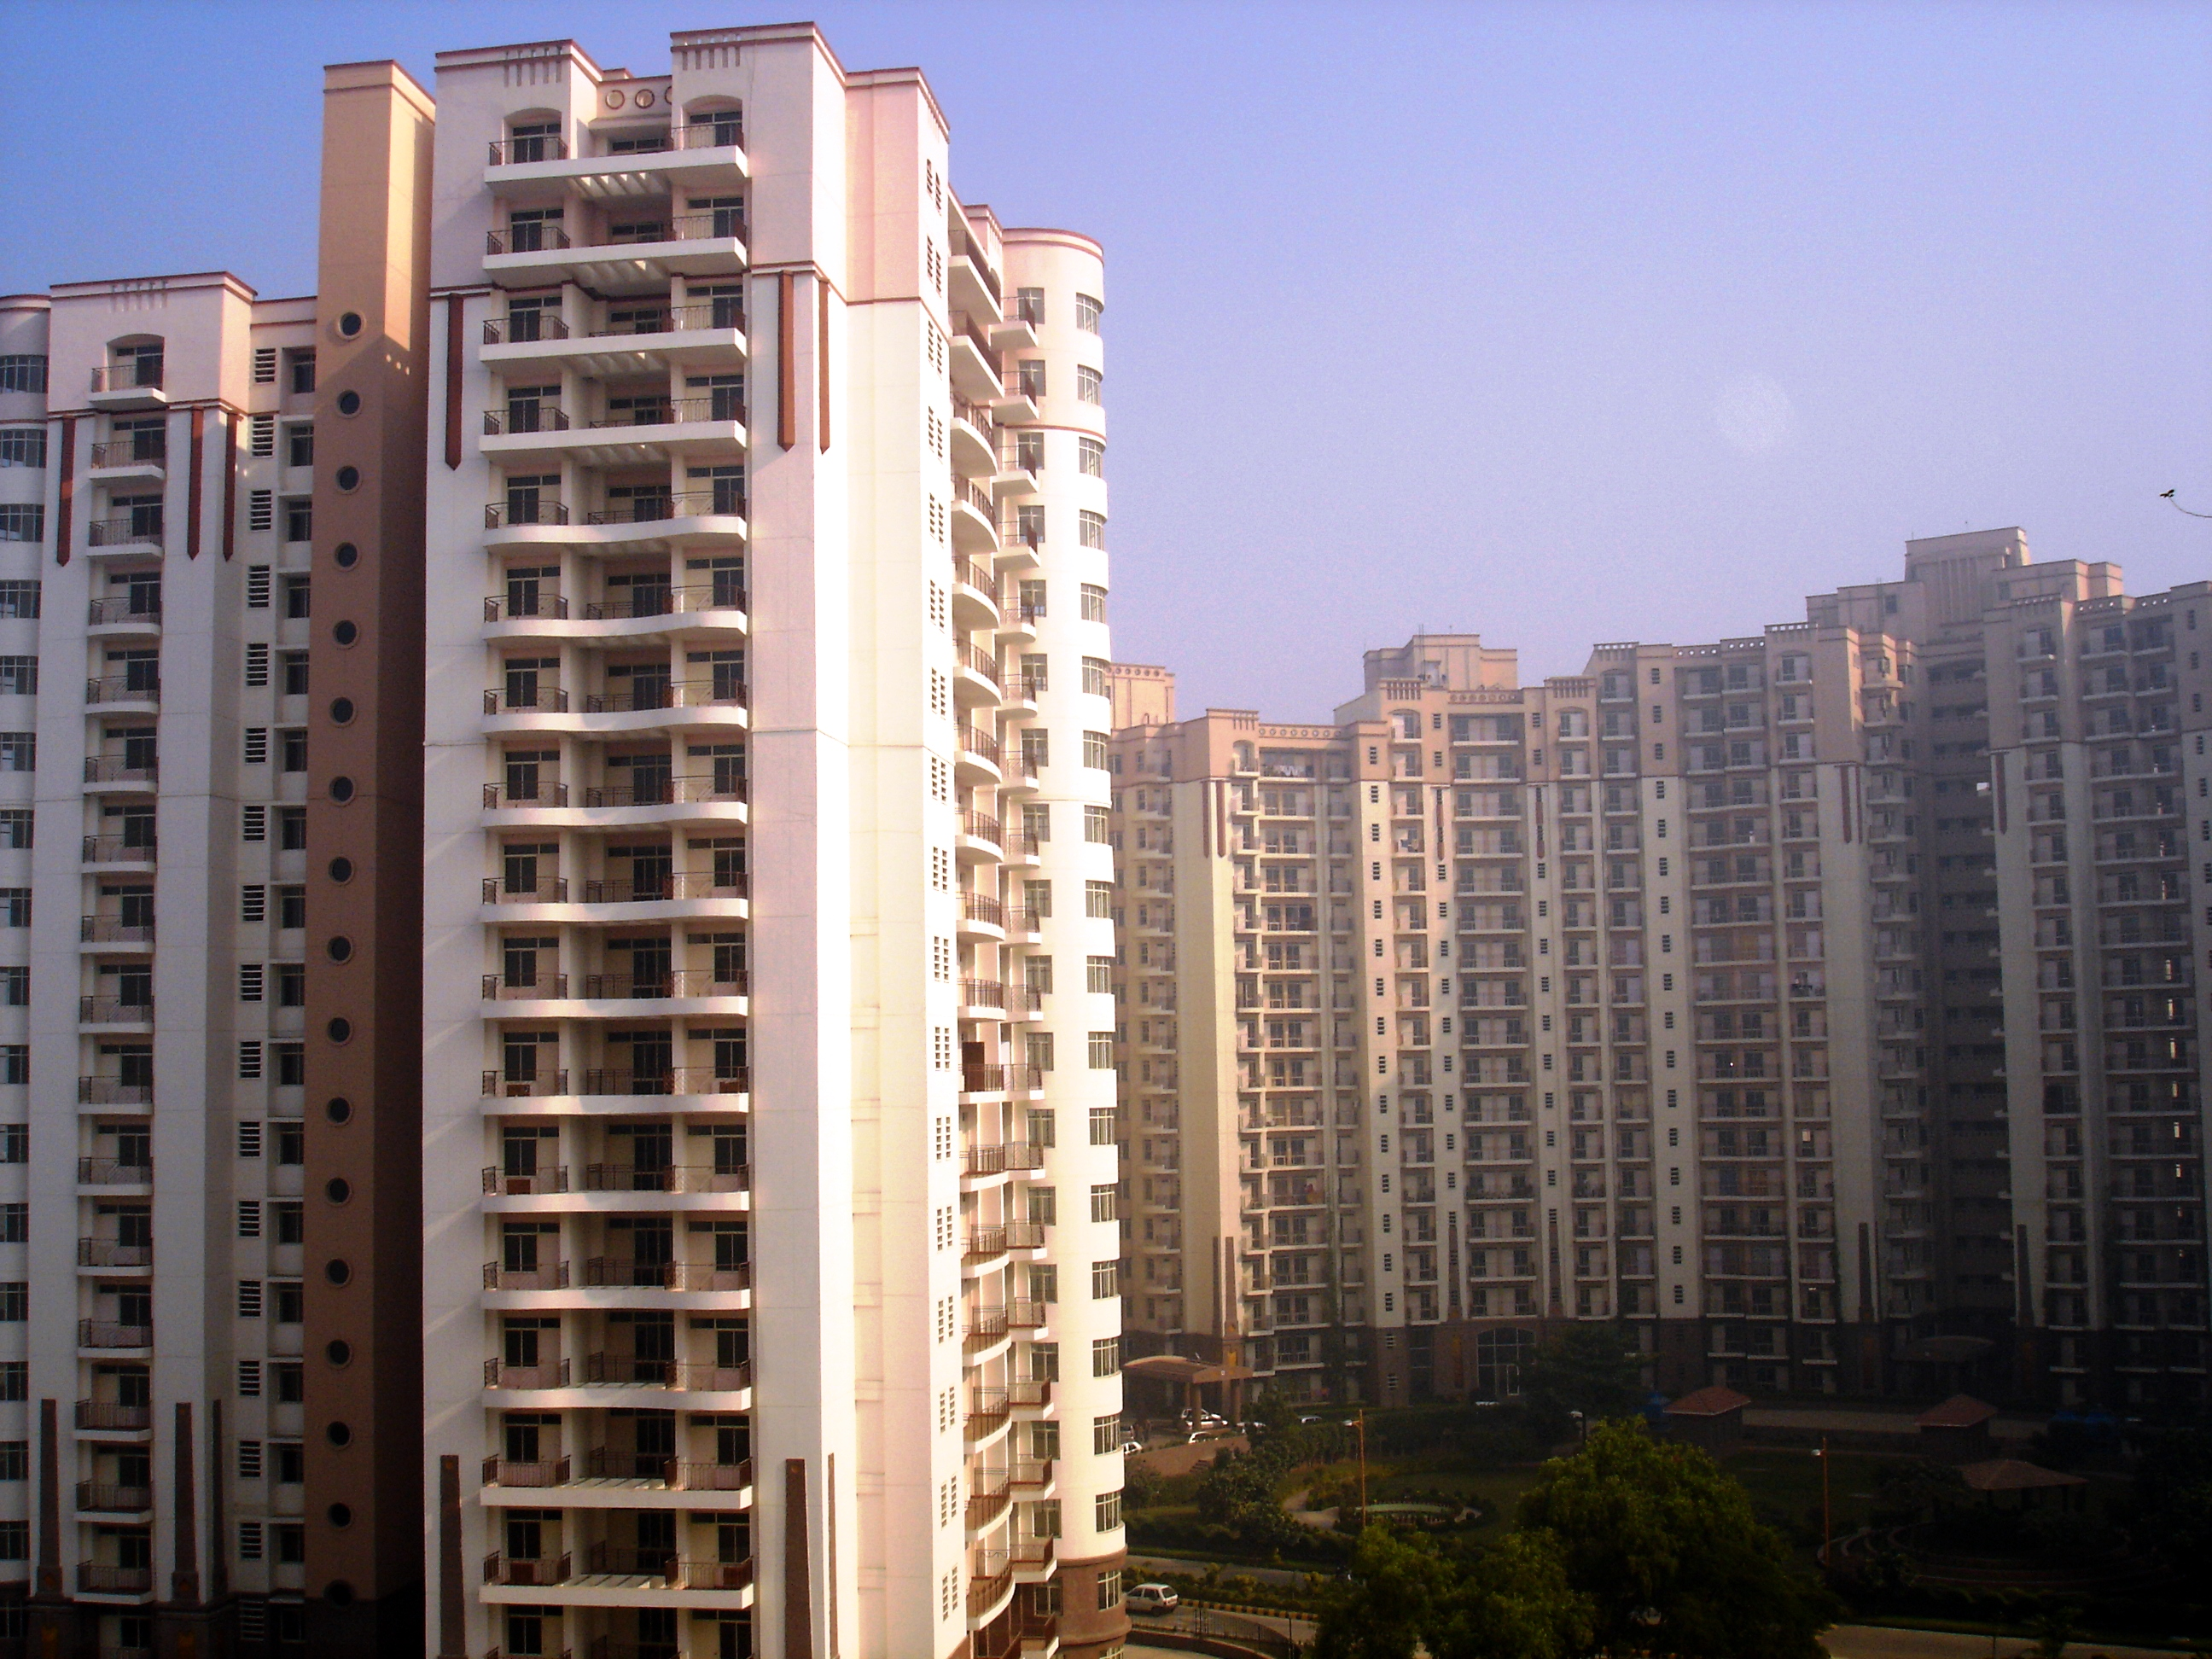 Evolution and need of high rise developments